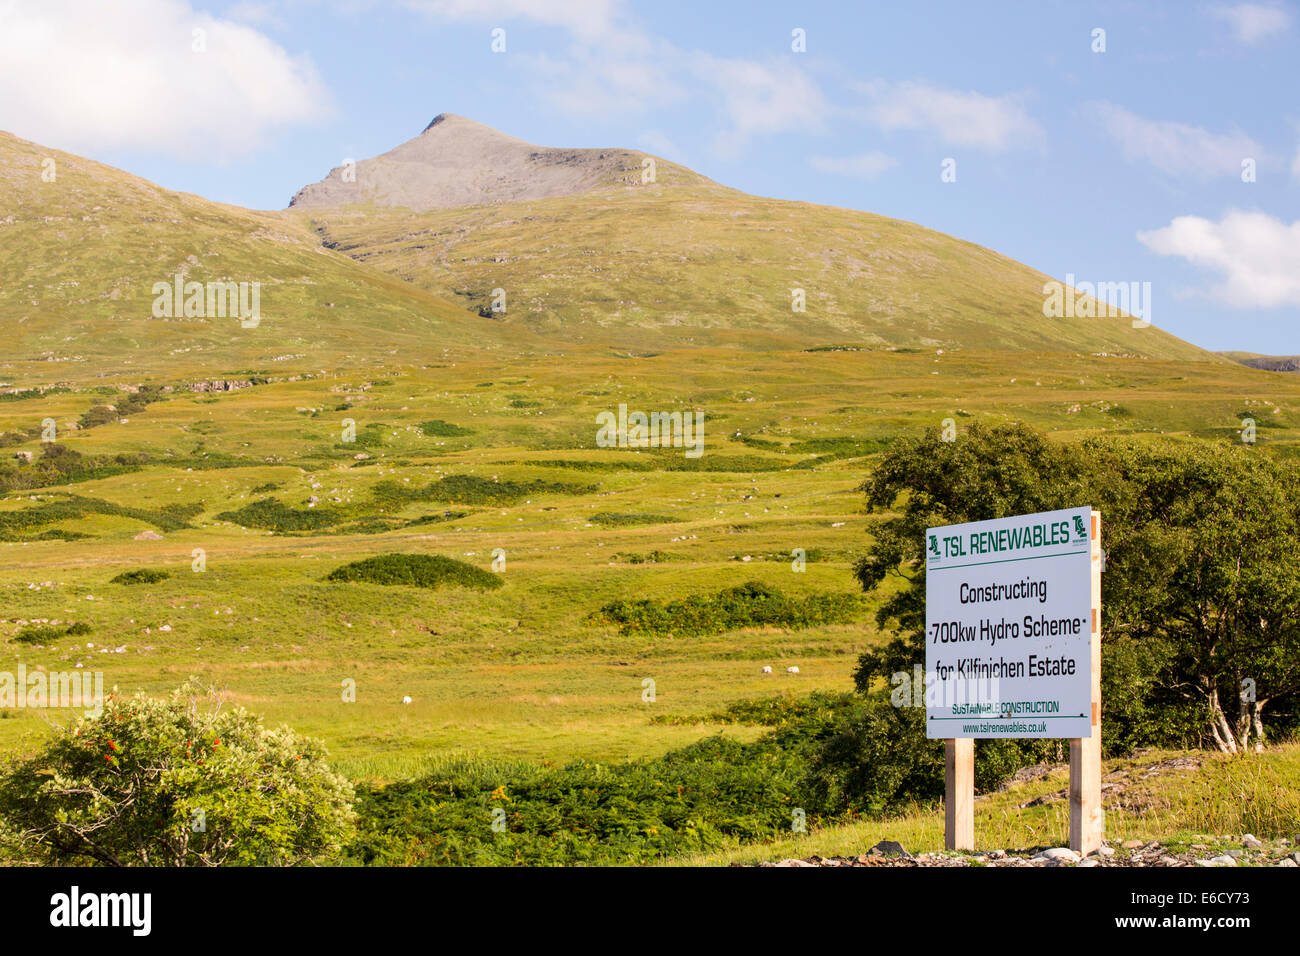 A 700 Kw hydro pwer scheme being constructed on the slopes of Ben More on Mull, Scotland, UK. - Stock Image